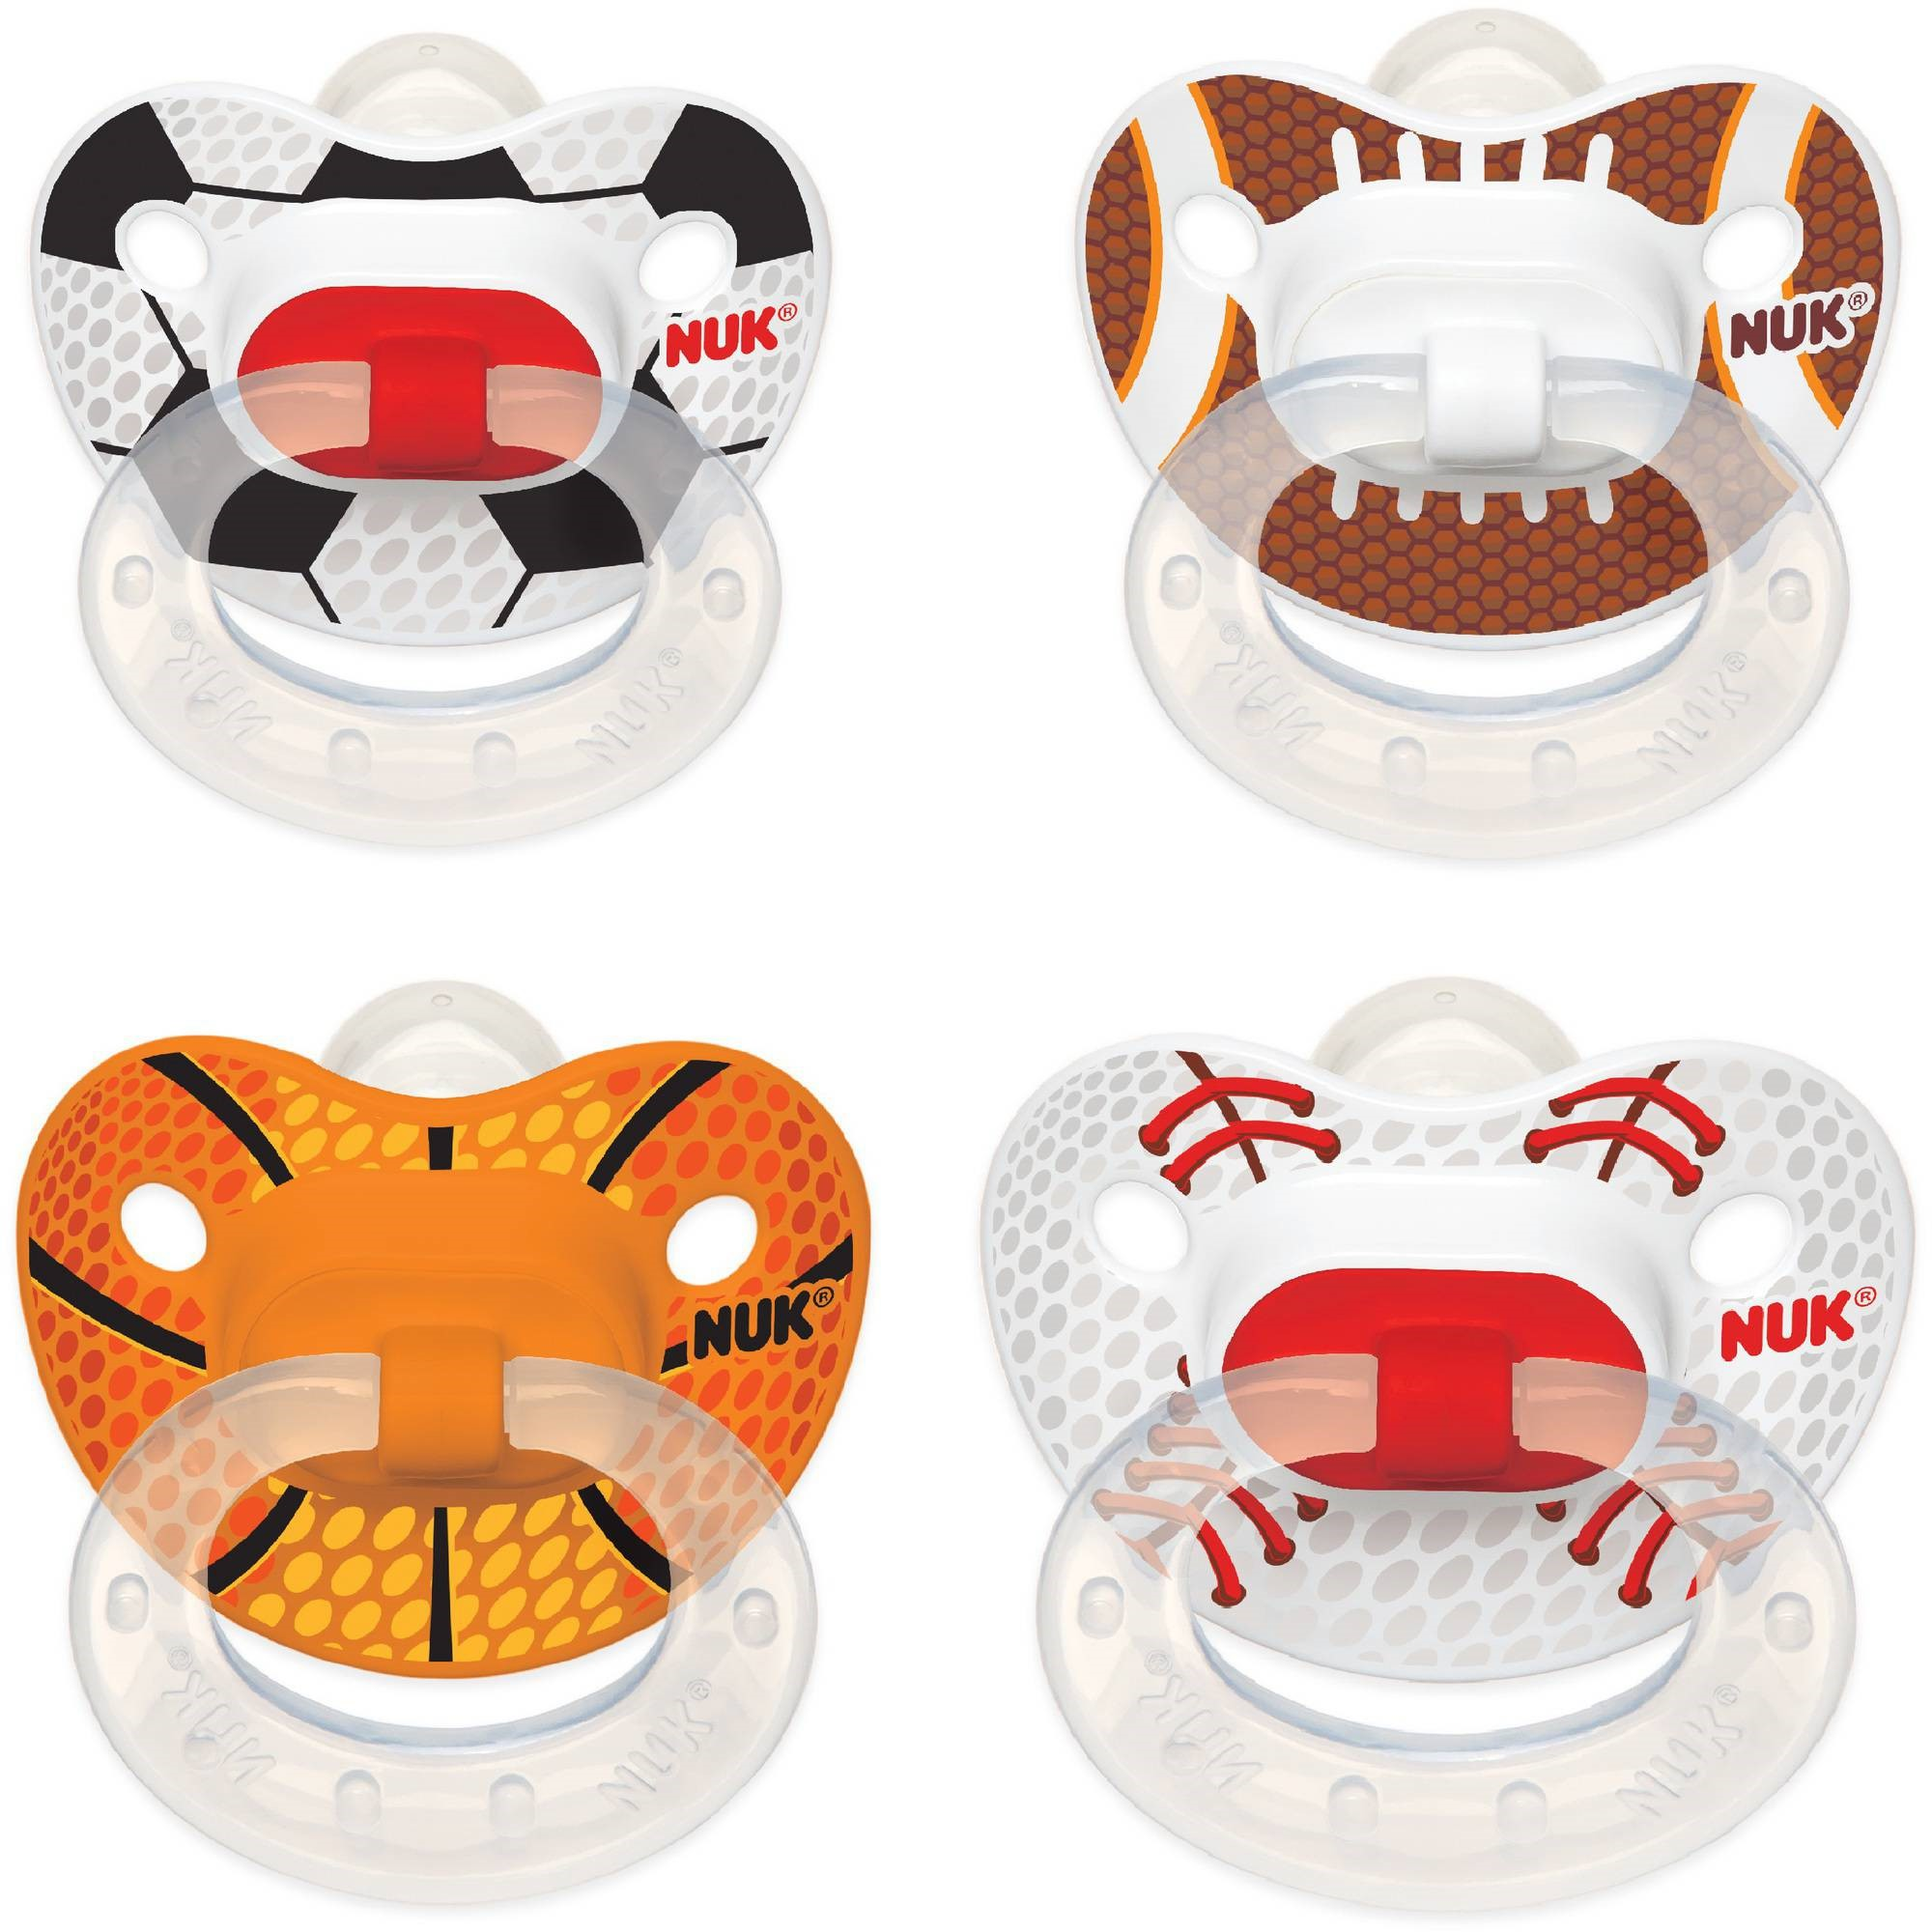 NUK Sports Silicone Orthodontic Pacifiers, 2 ct, 6-18 months (Design May Vary)